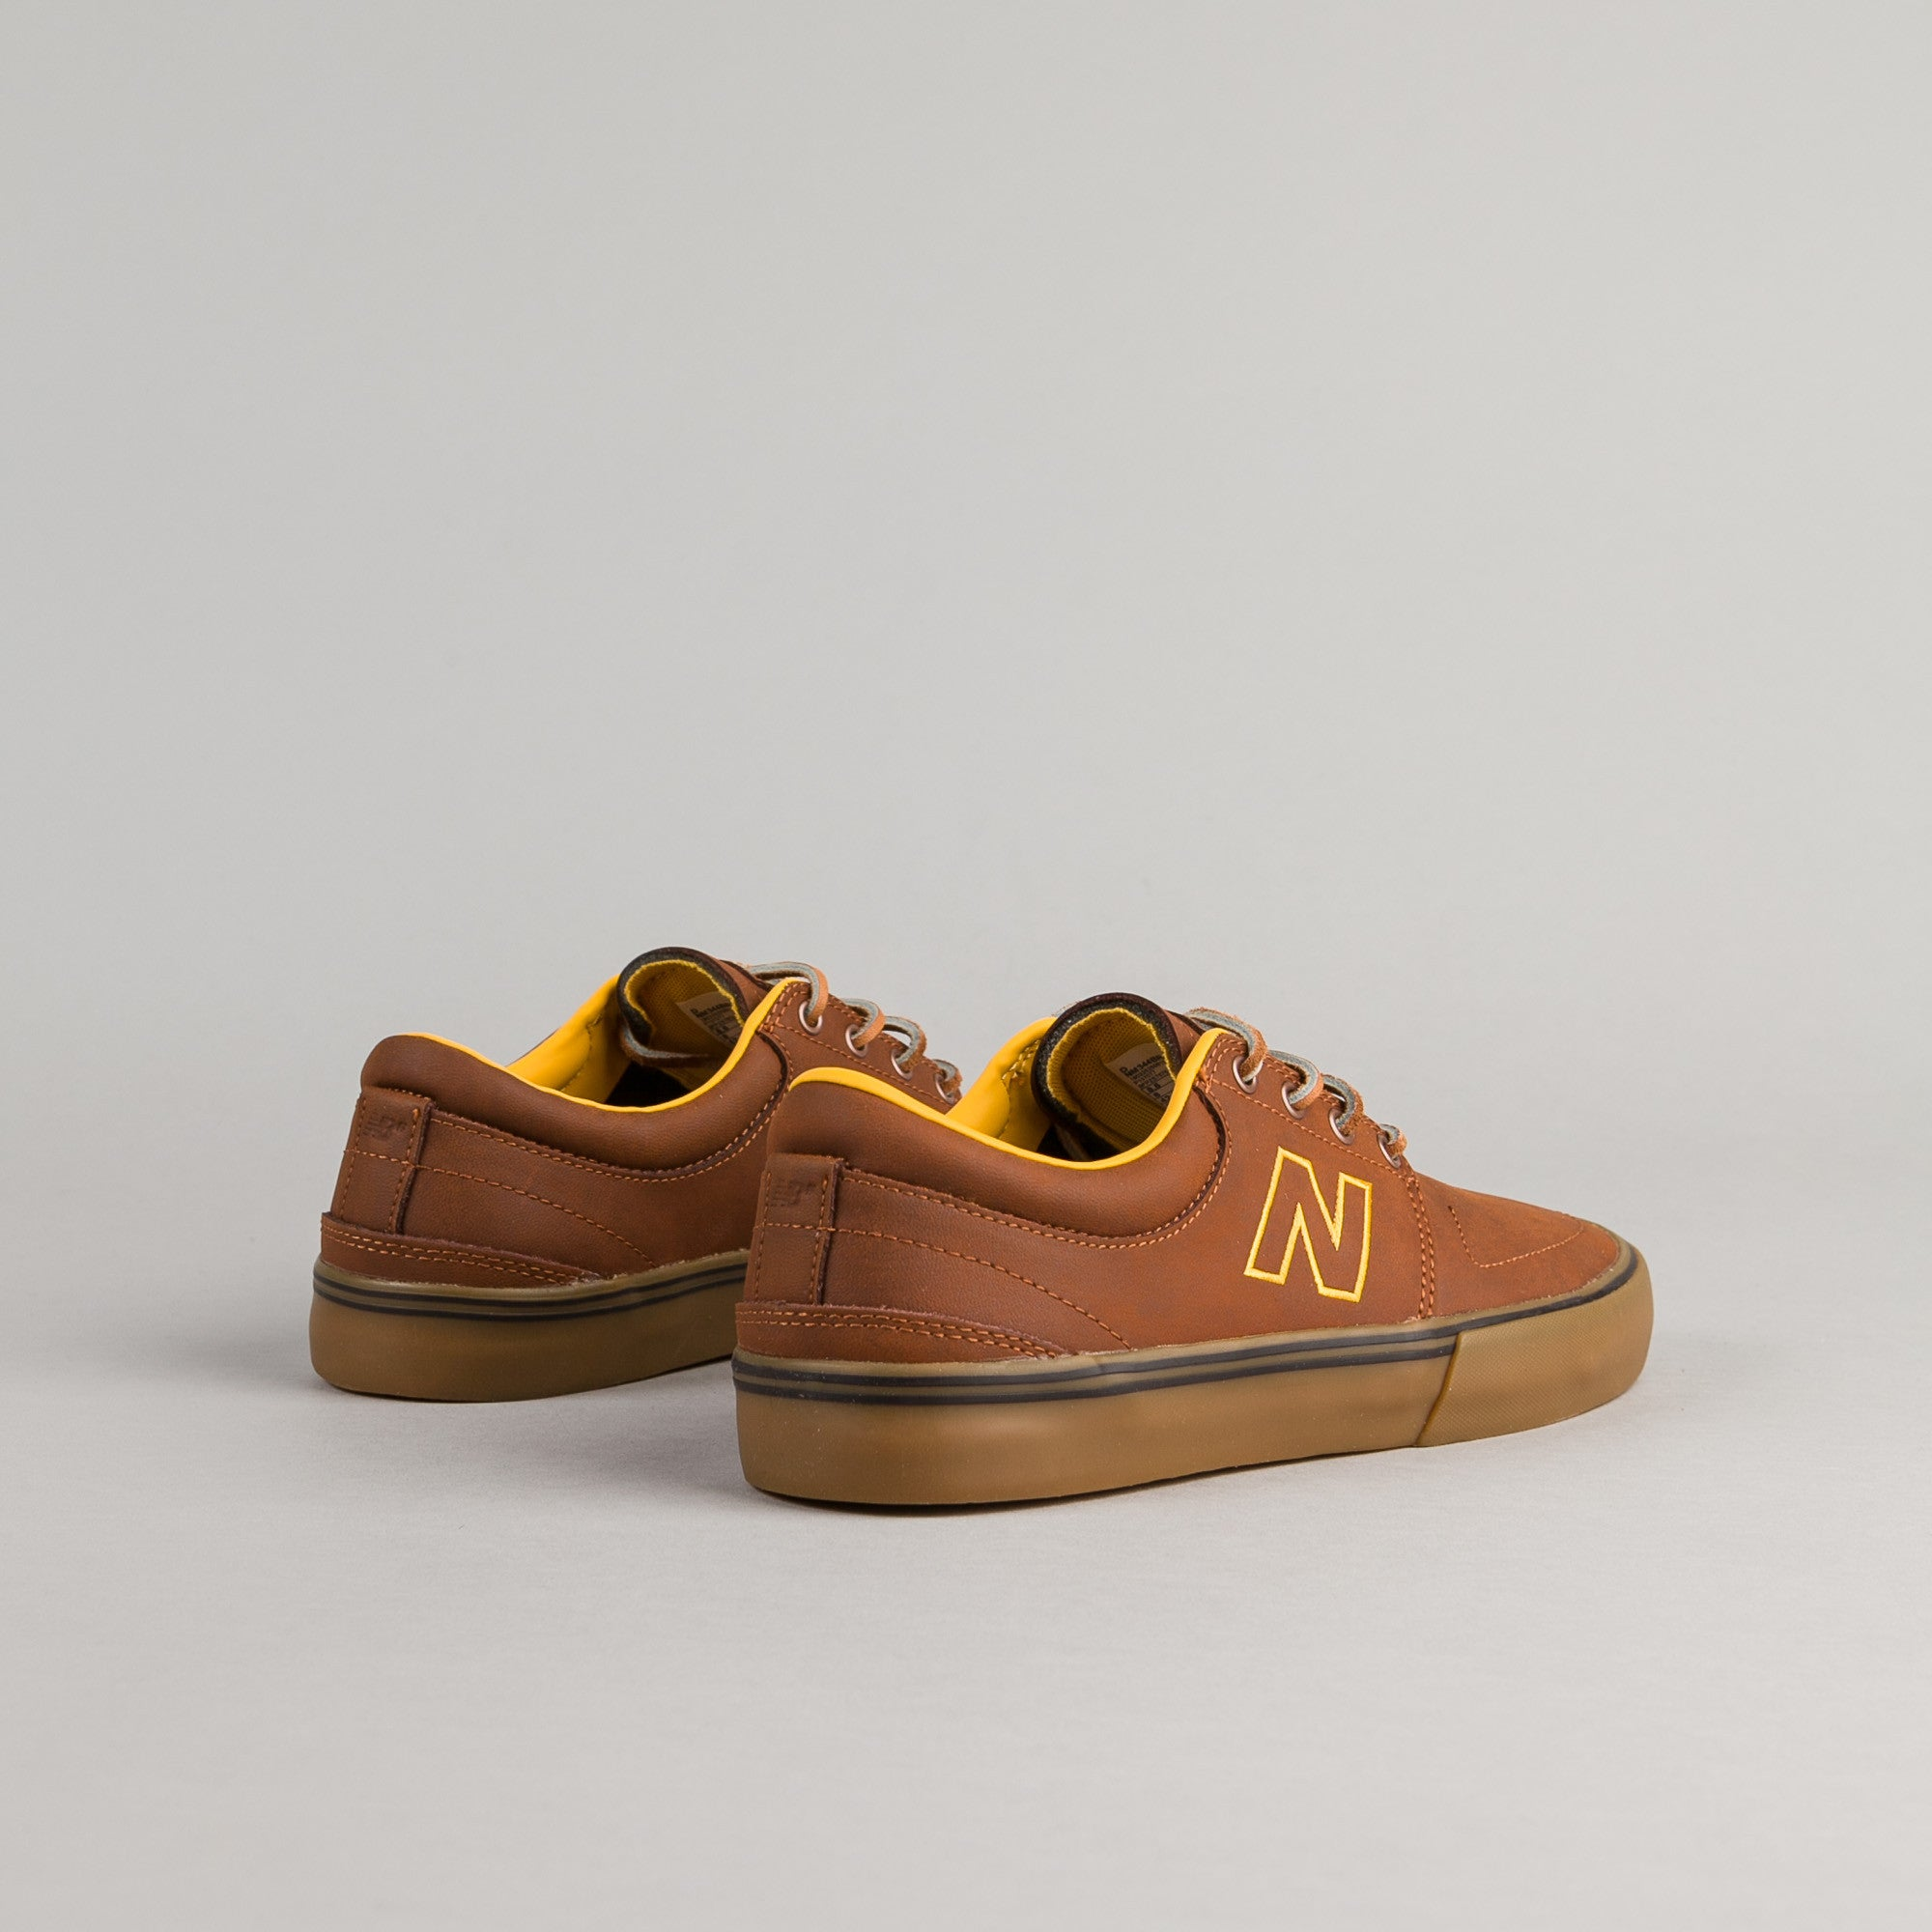 New Balance Numeric Brighton 344 Shoes - Brown / Gum